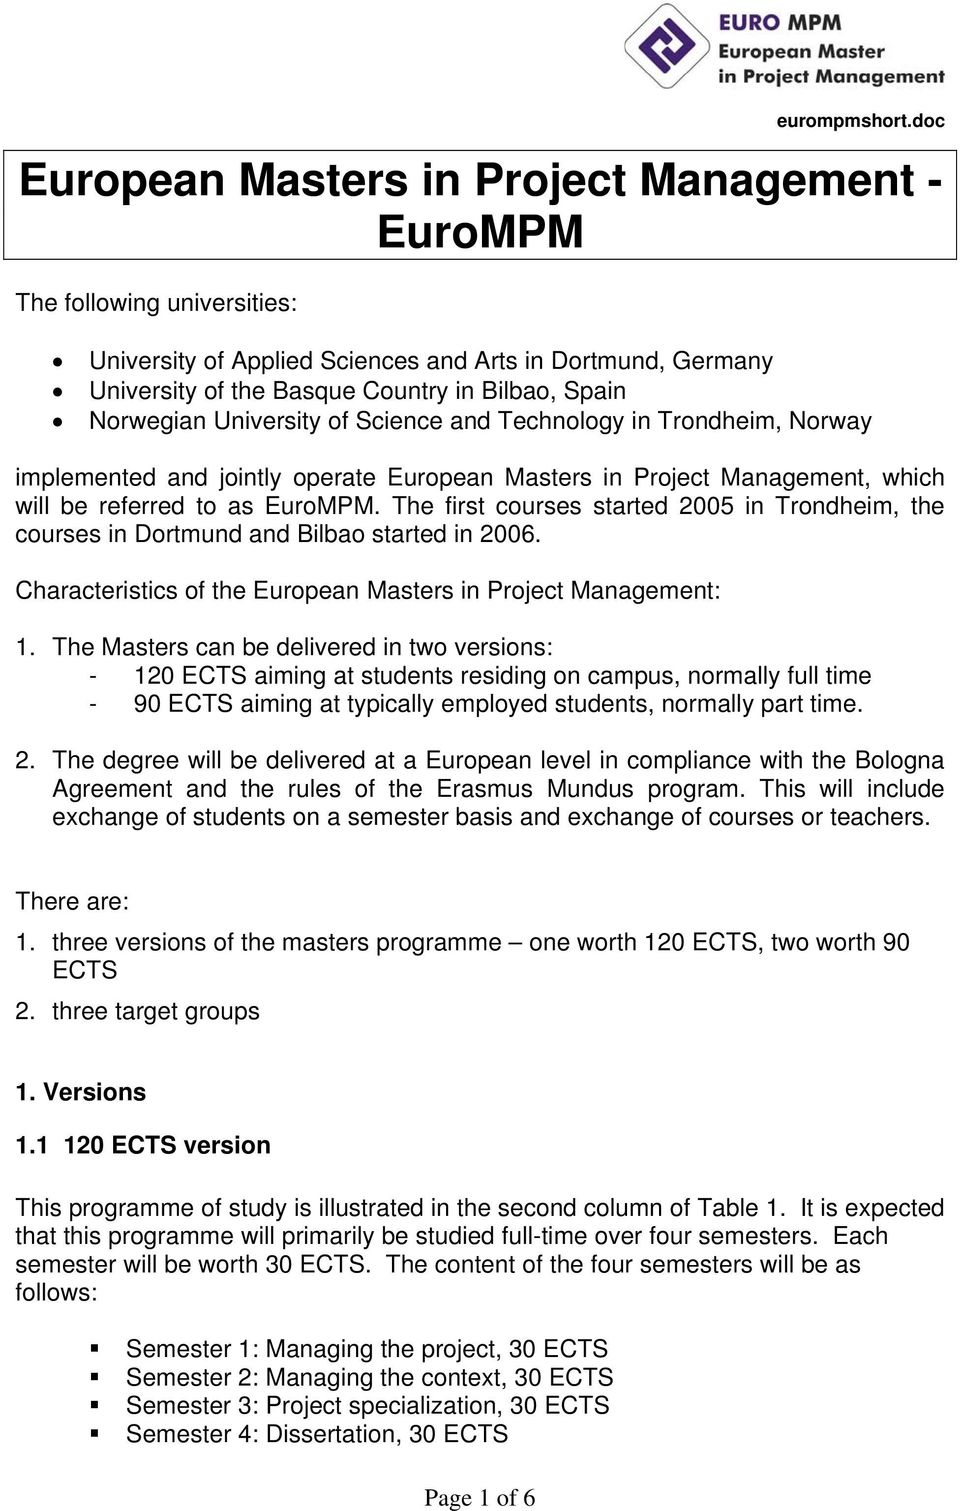 European Masters In Project Management Eurompm Pdf Free Download